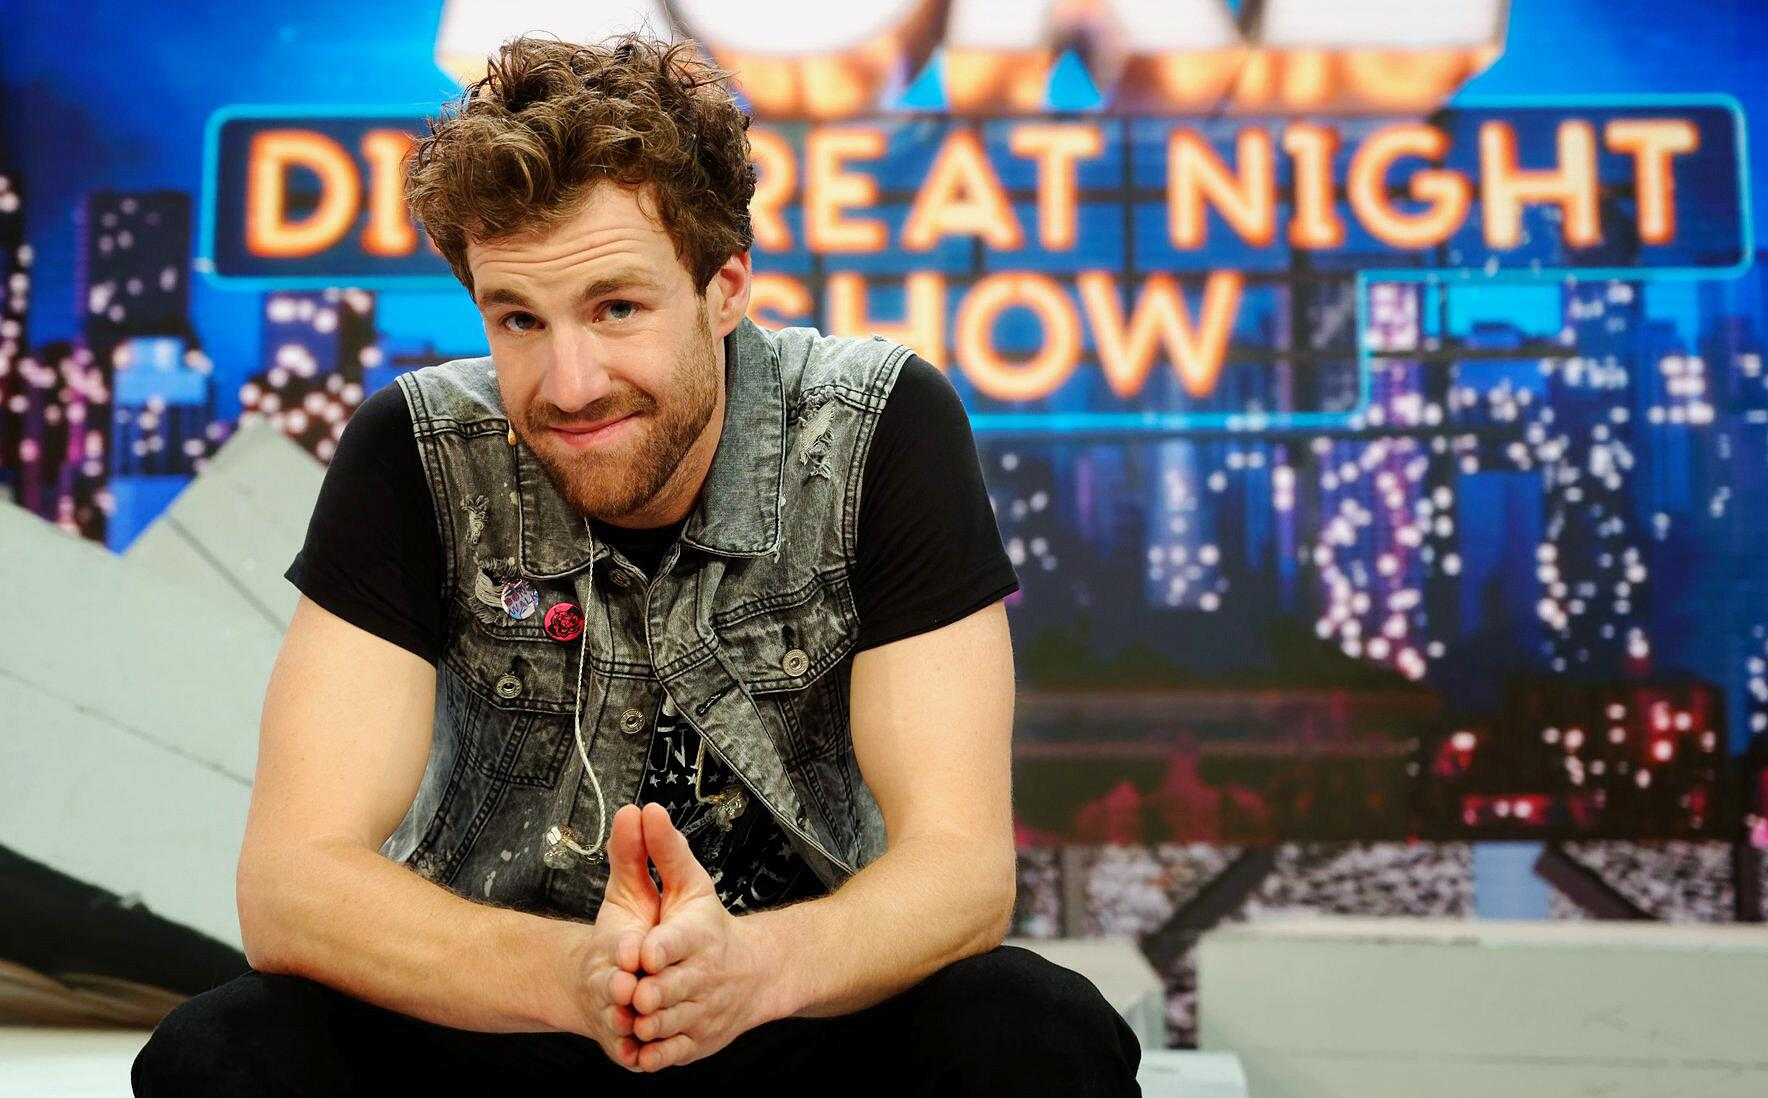 Bild zu LUKE! The Greatnightshow, Luke Mockridge